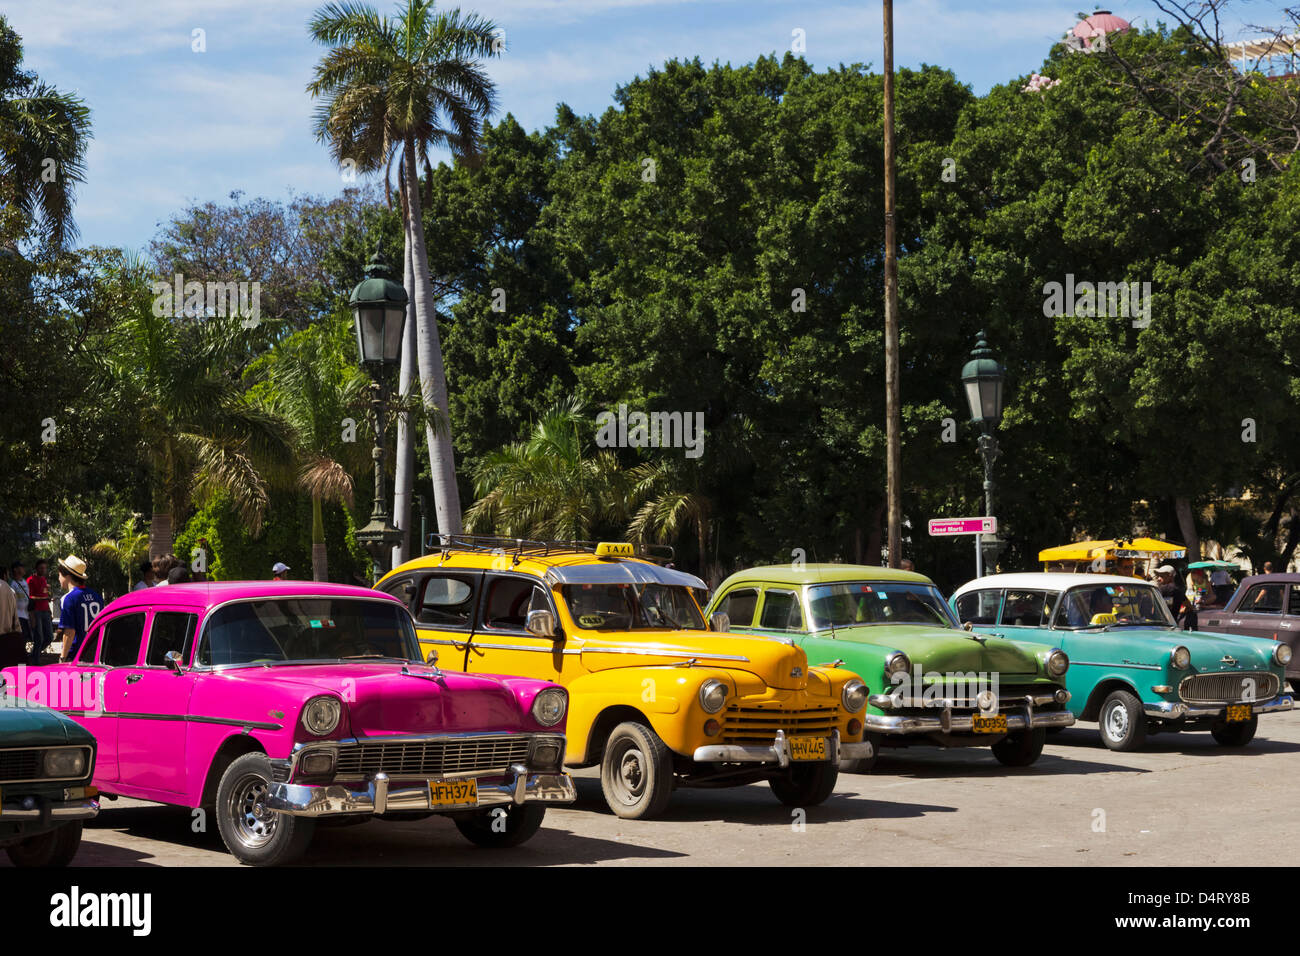 Old American Cars in Parque Central Havana Cuba - Stock Image